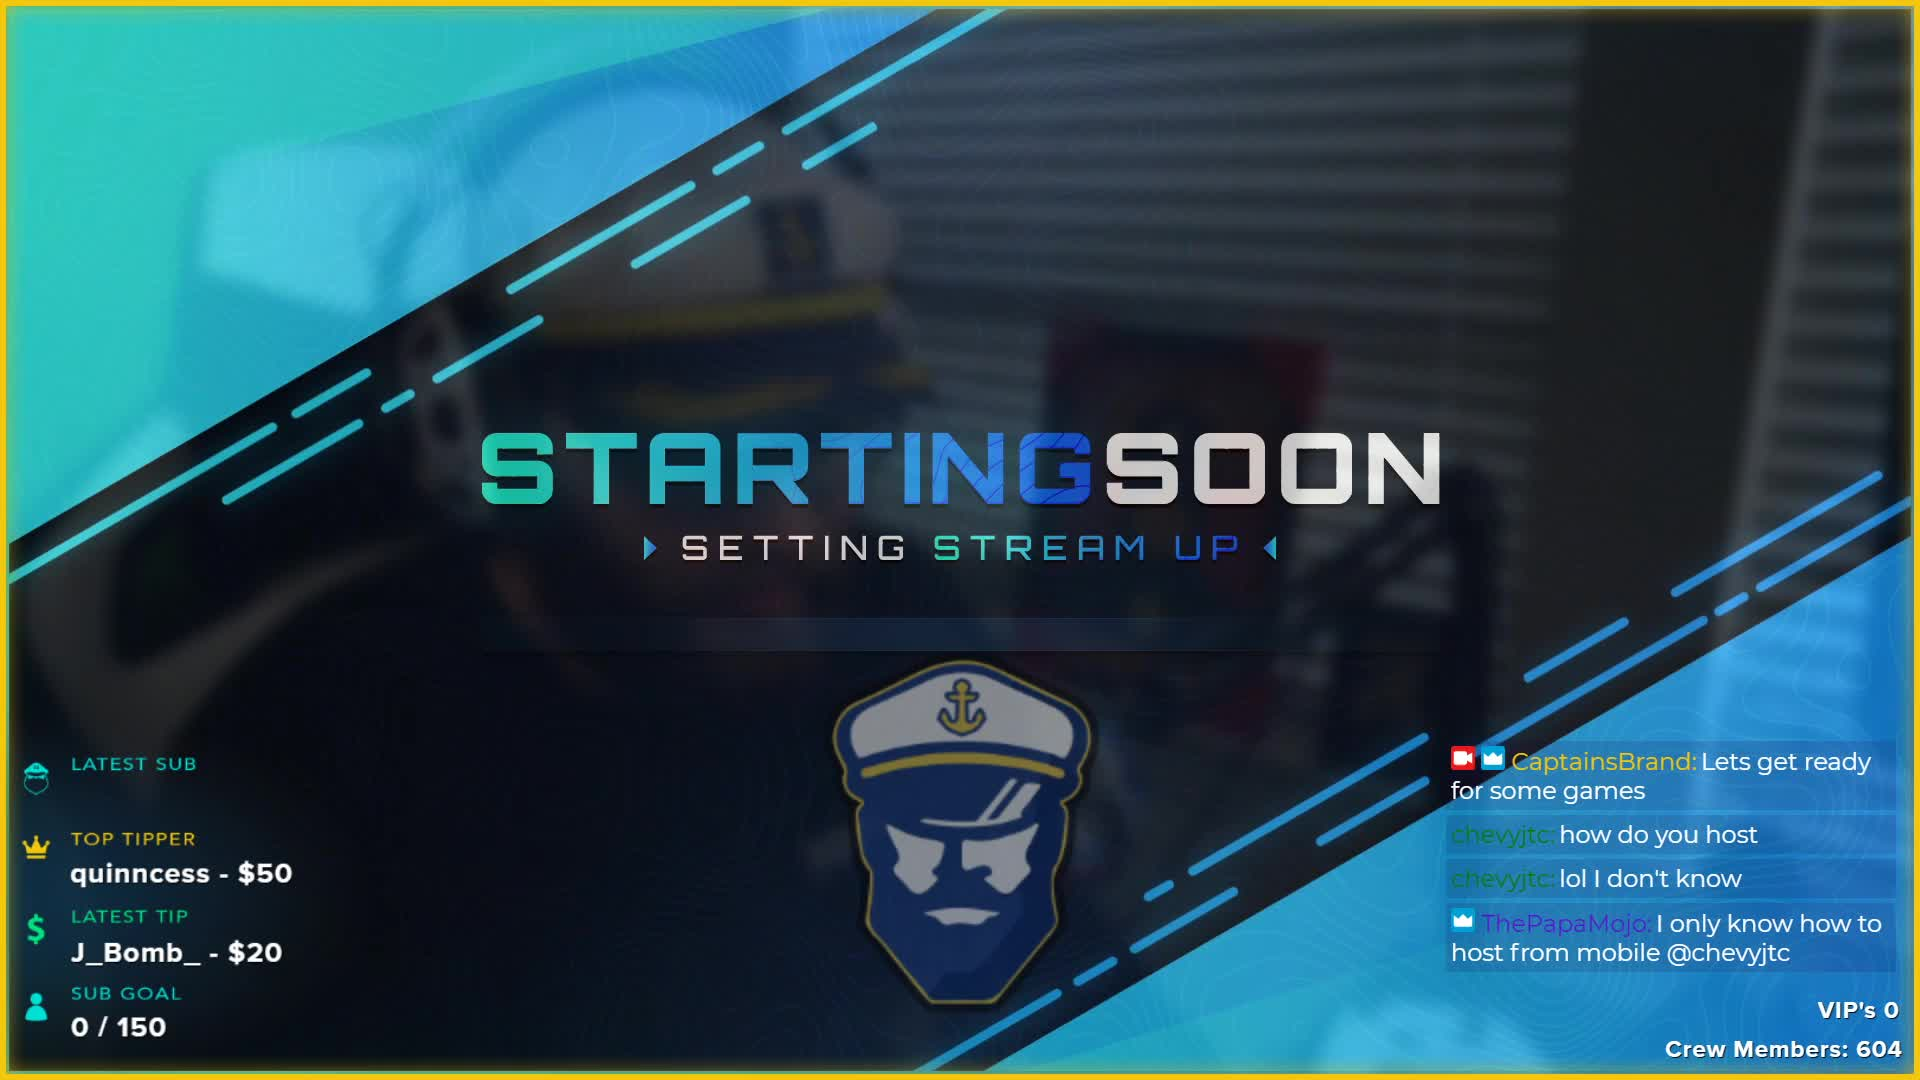 twitch.tv/captainsbrand